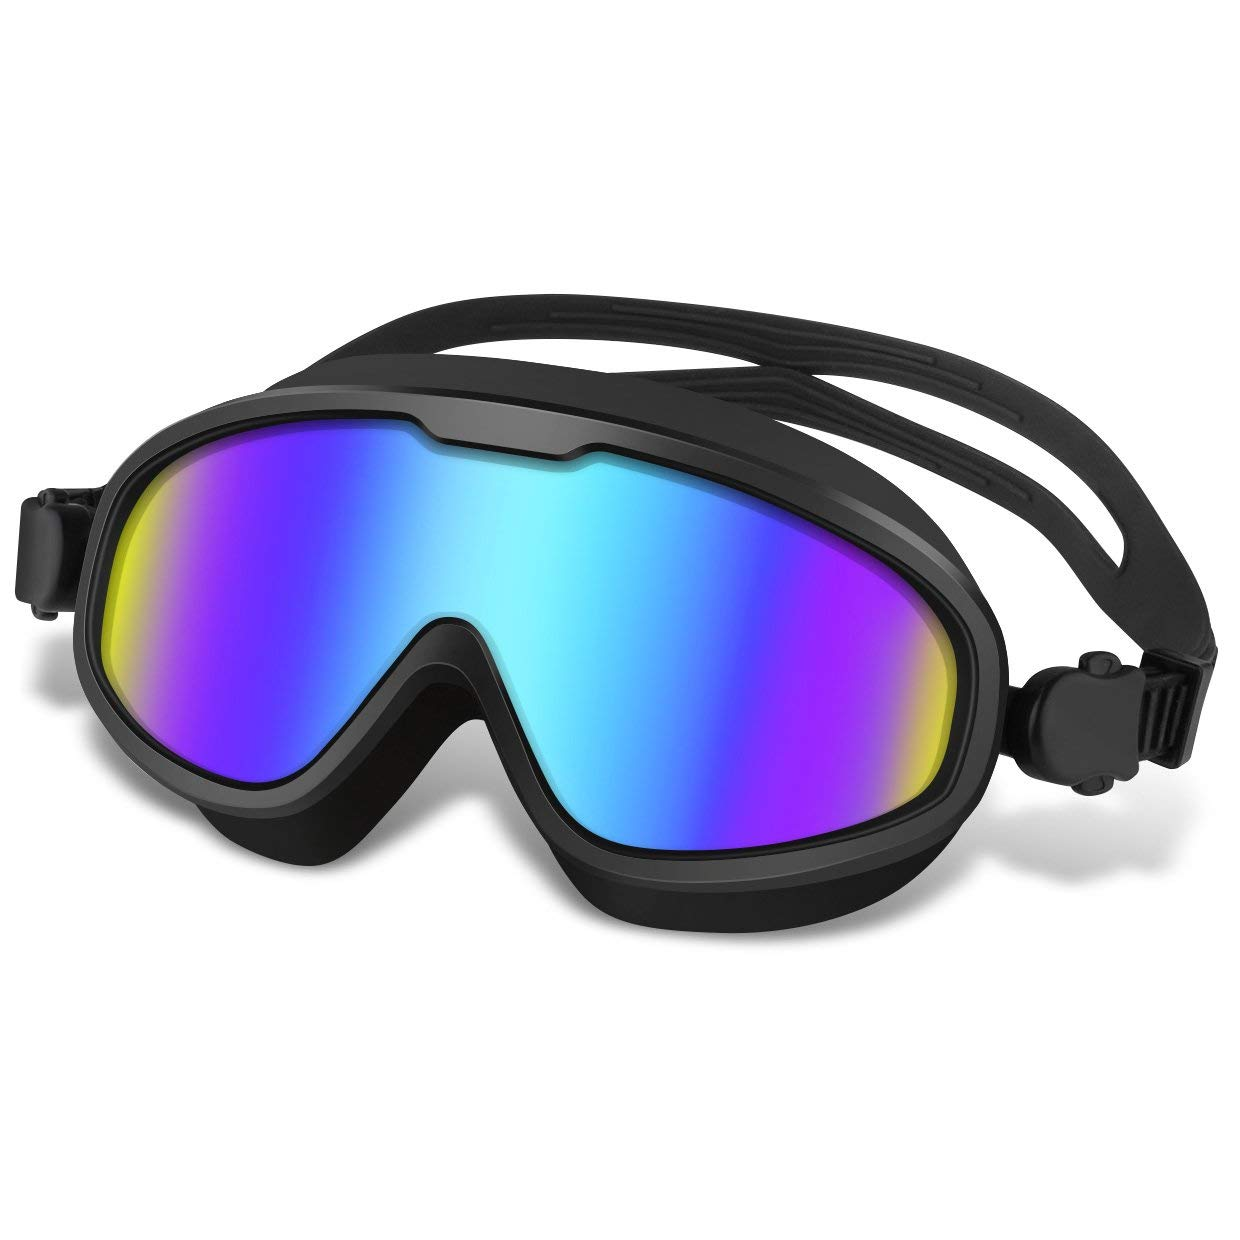 21b6b3ee2a0 Get Quotations · FEIKE Swimming goggles Swim Goggles